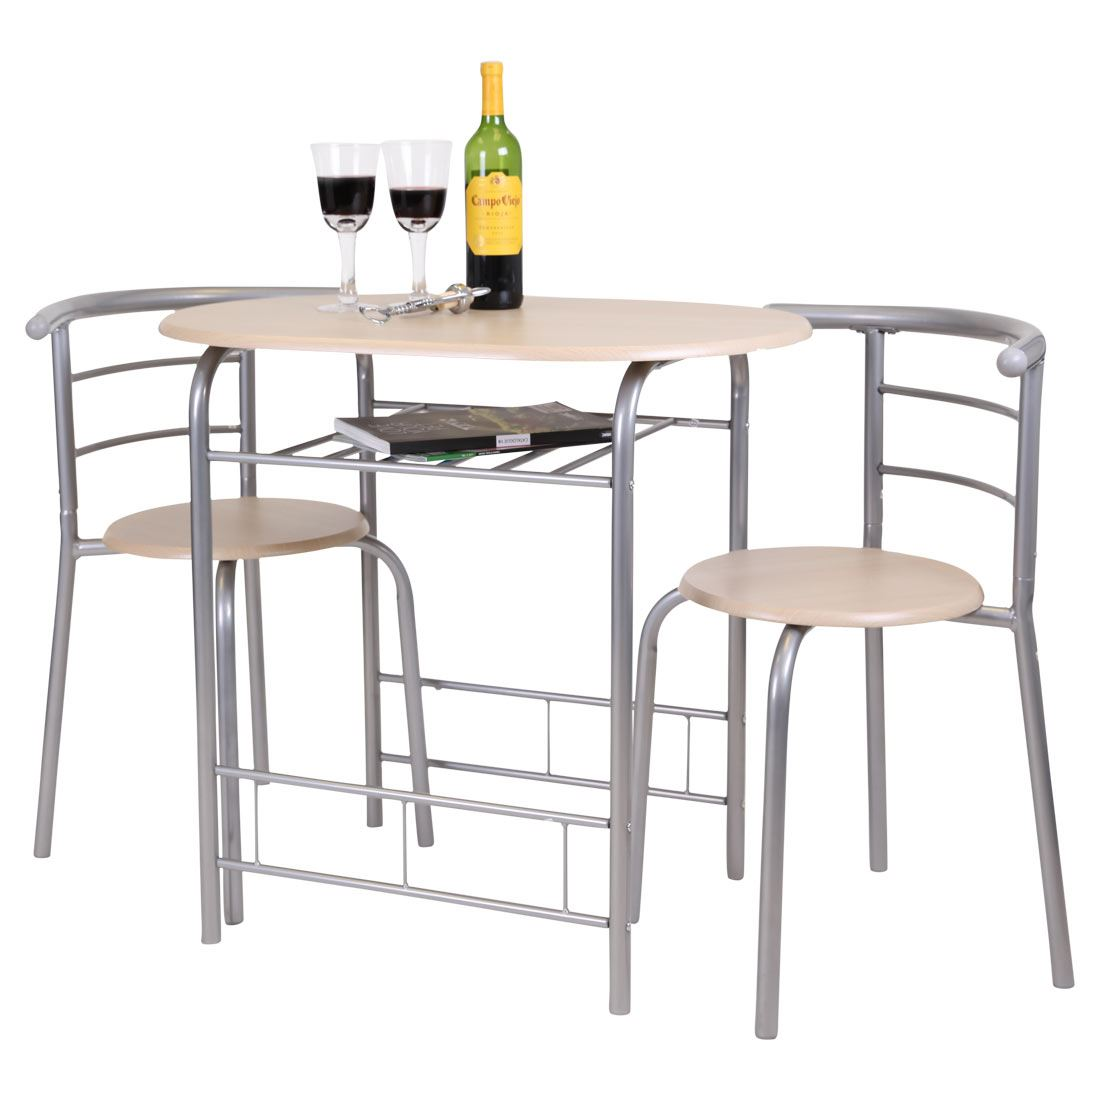 3 piece kitchen table bistro chicago dining and 2 chair set breakfast